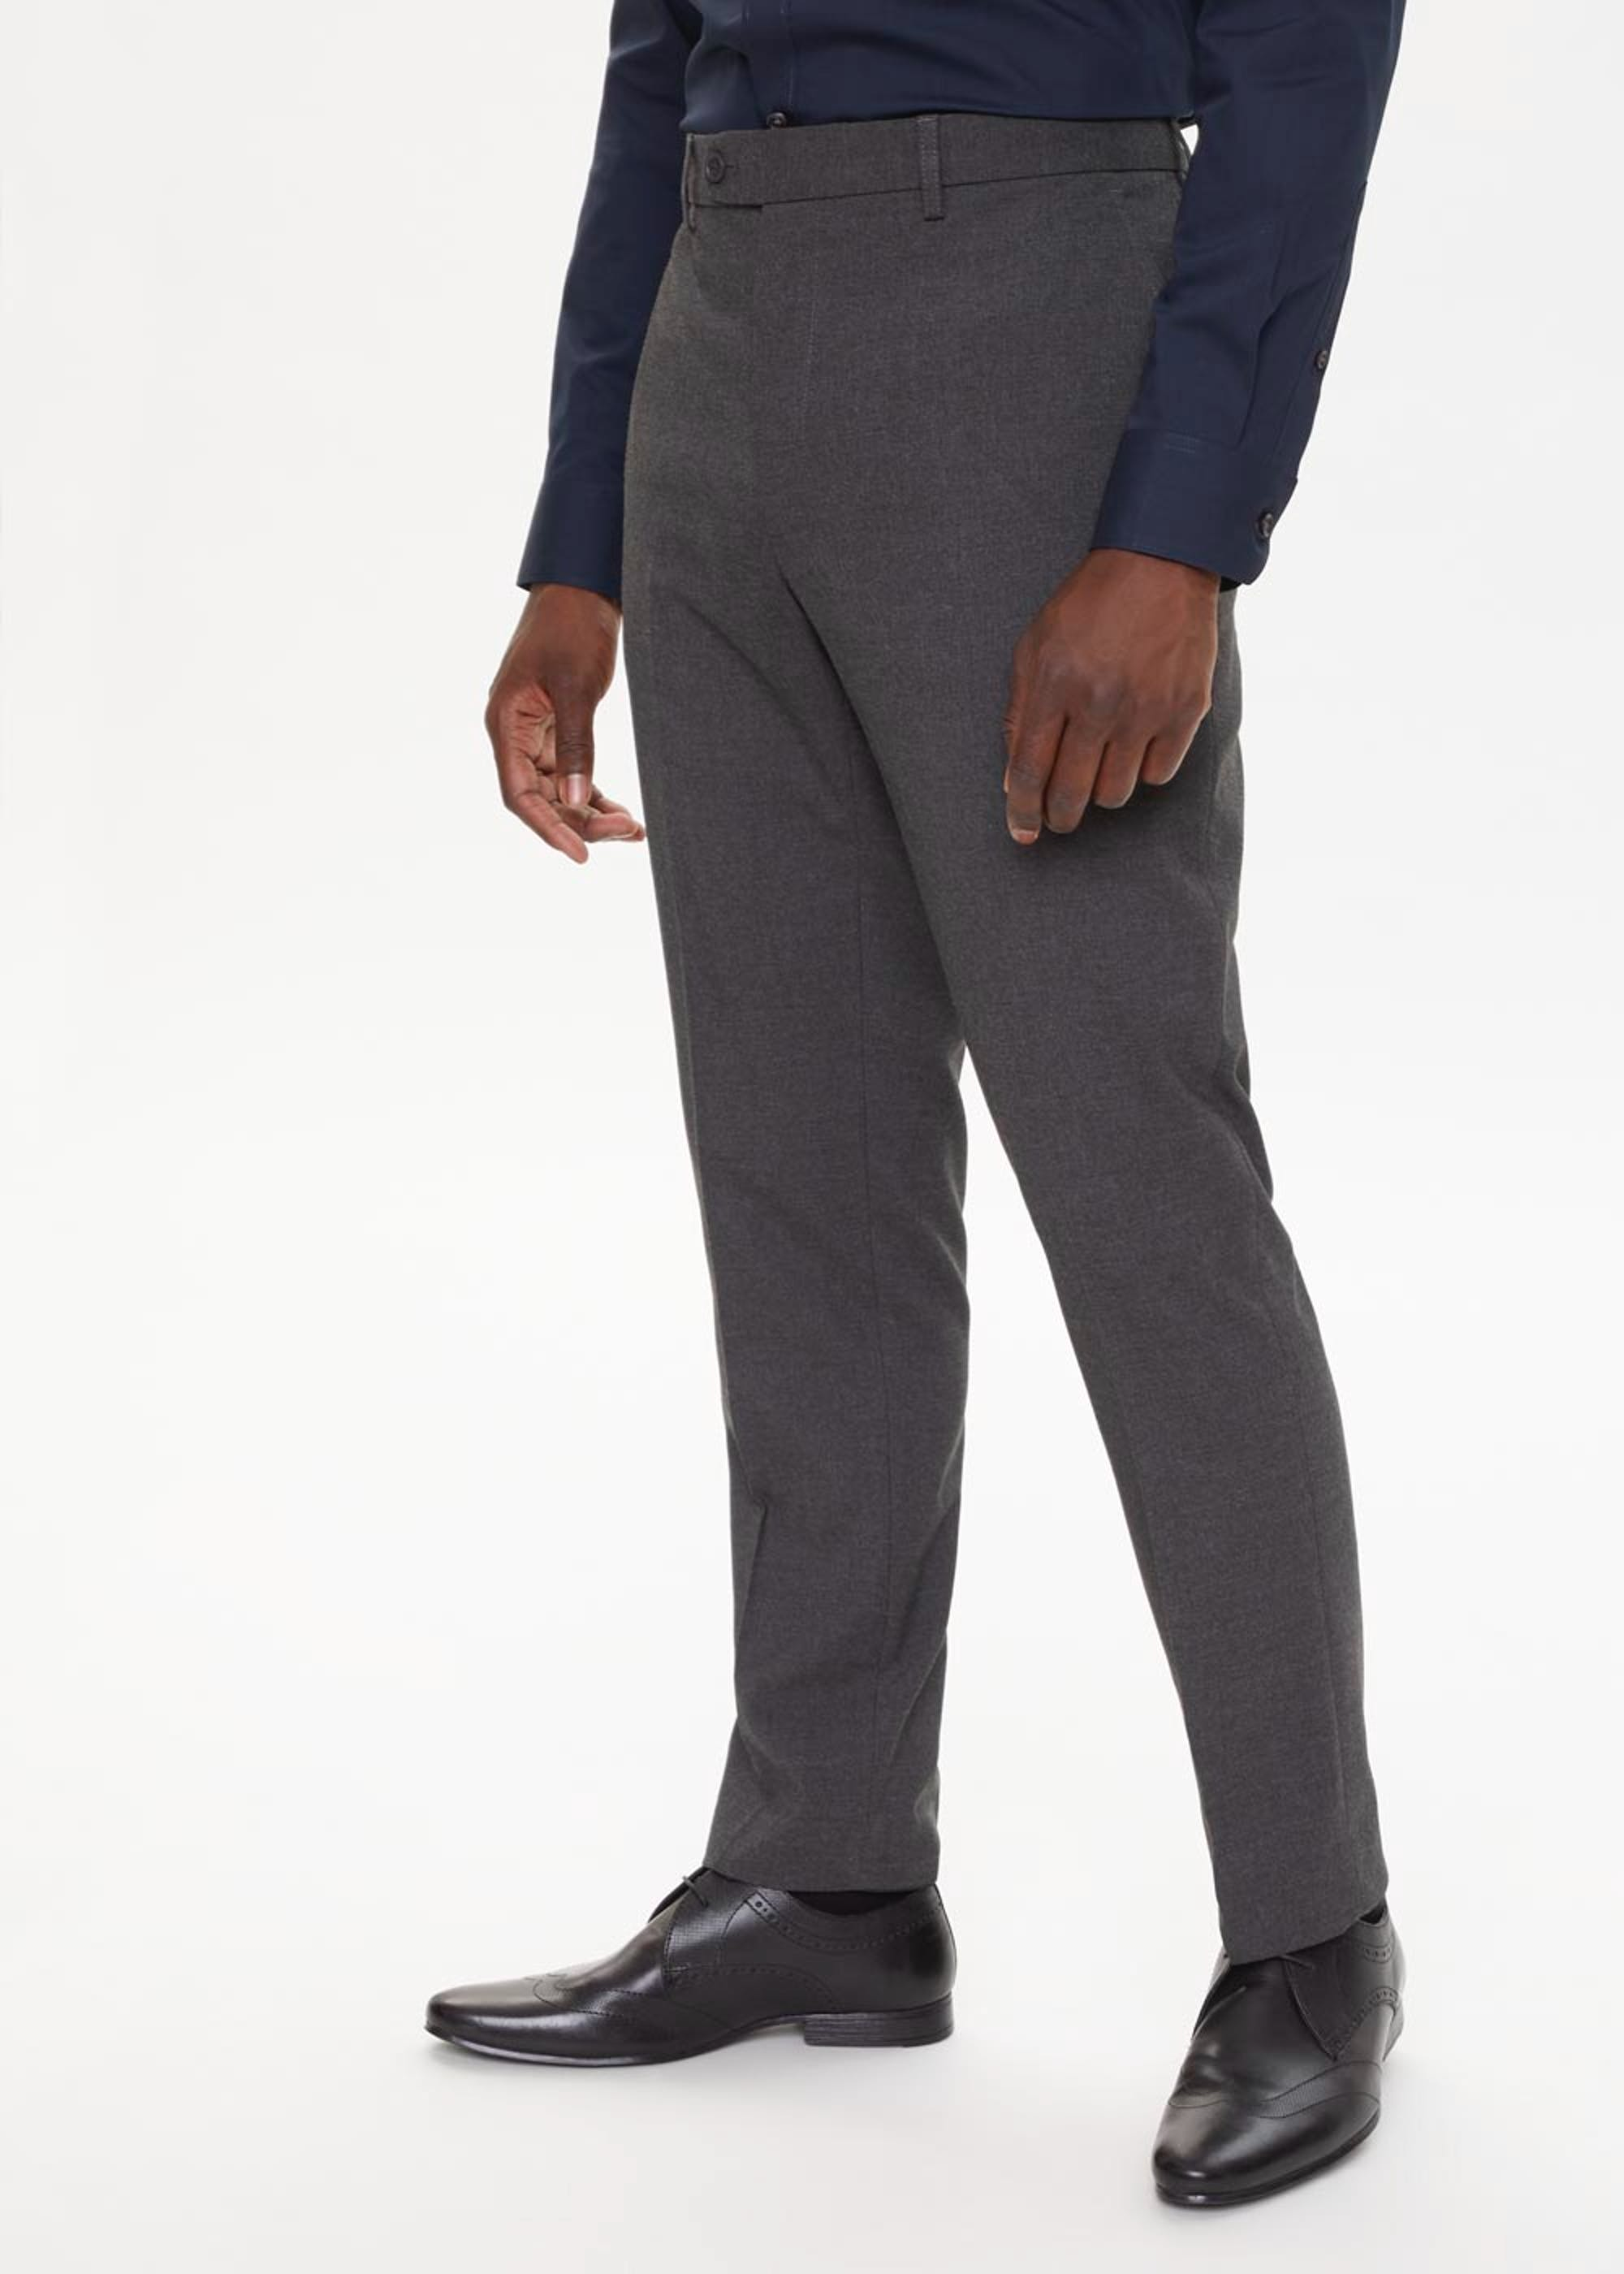 Taylor & Wright Slim Stretch Formal Trousers Charcoal ncnR03